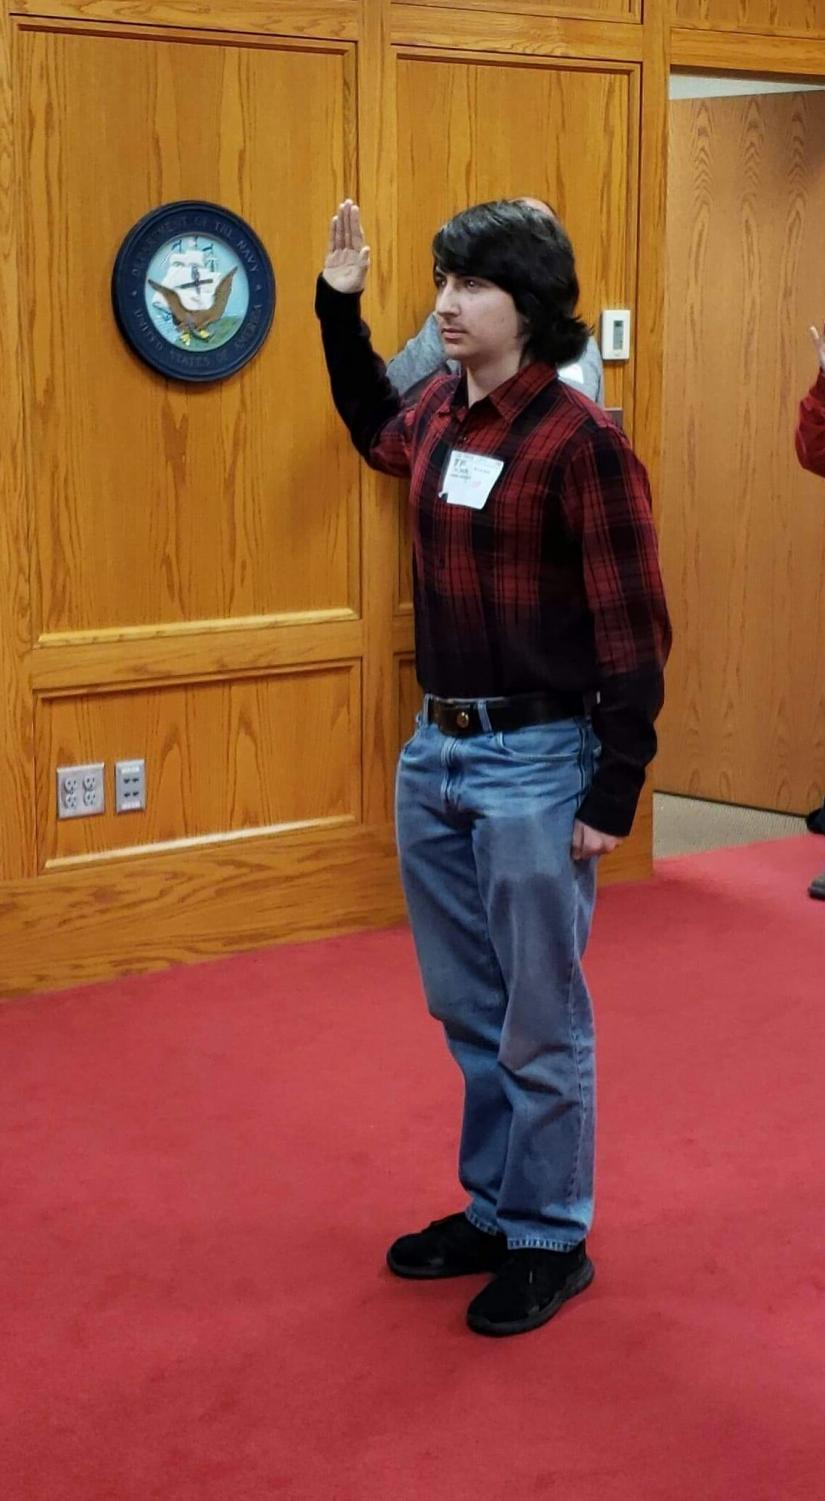 Connor Tomlinson taking the oath to swear into the USMC at Camp Dodge on Jan. 14., 2019